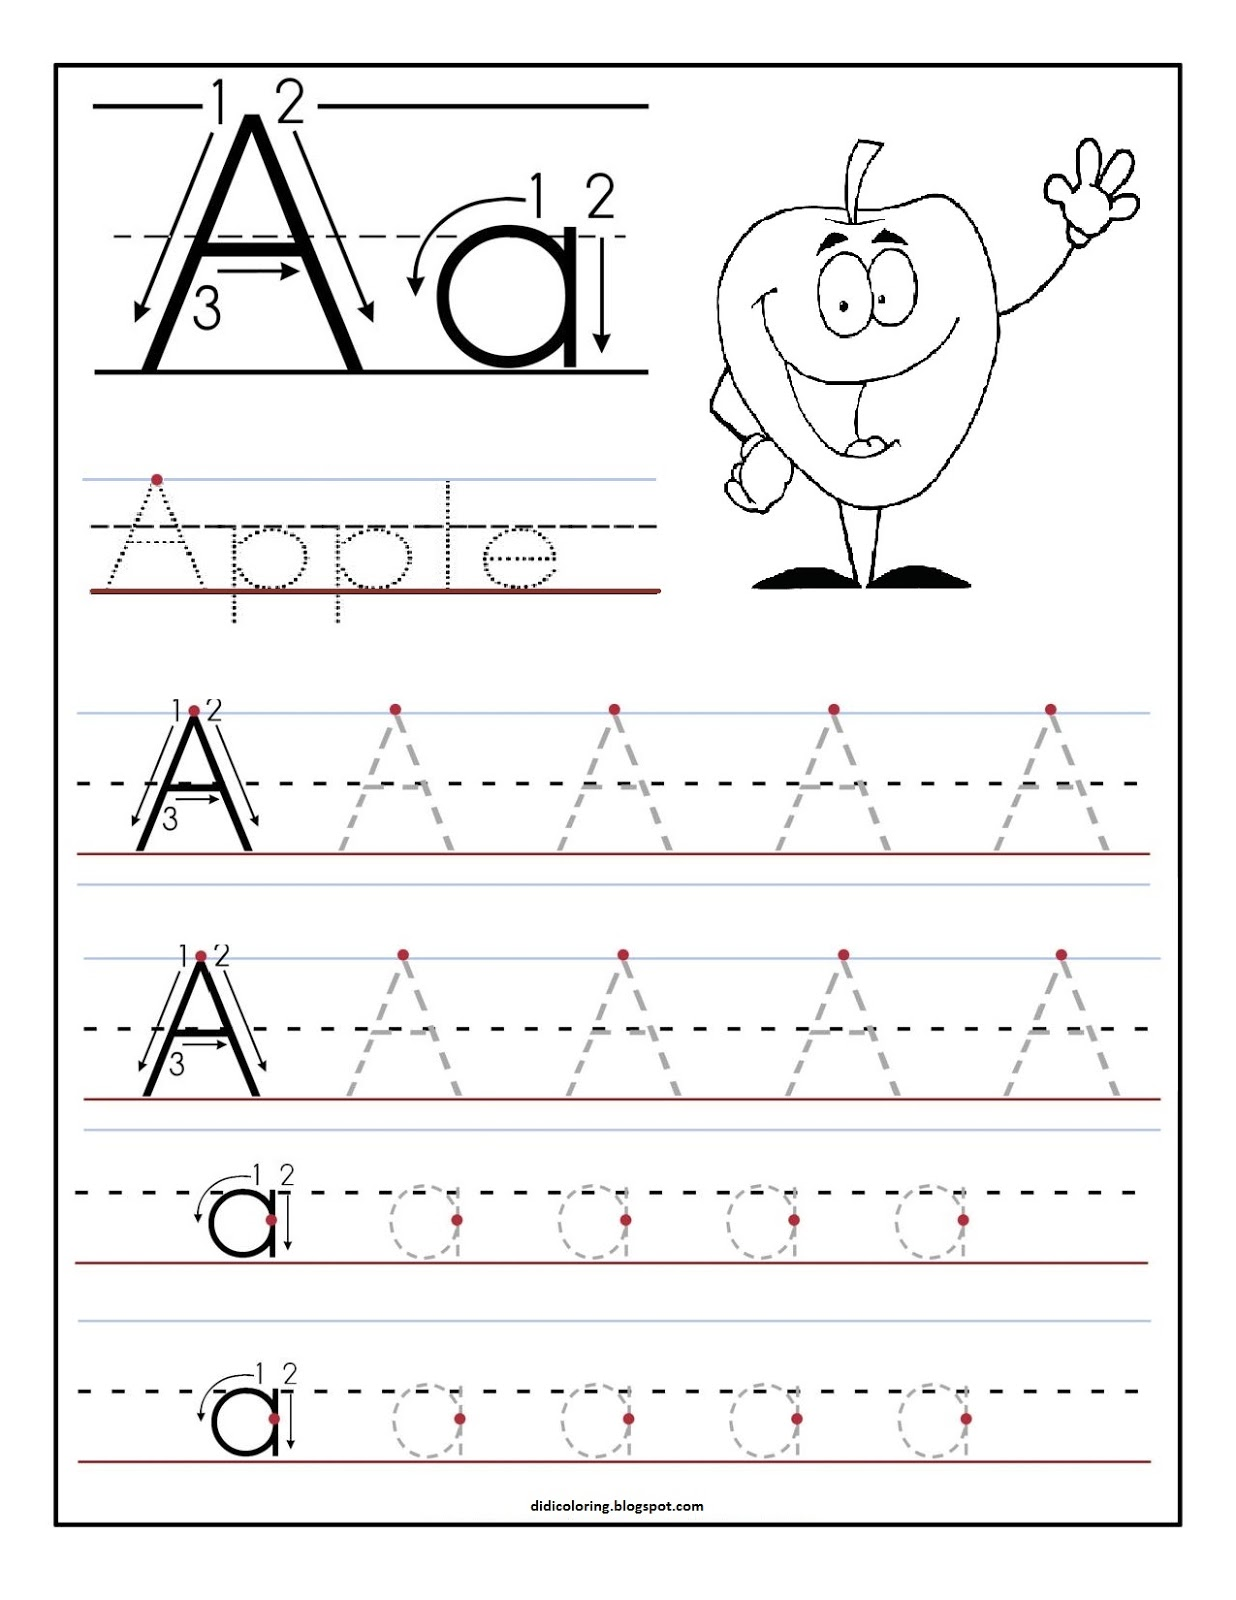 Printables Learn To Write Letters Worksheets learning to write letters worksheets davezan learn davezan